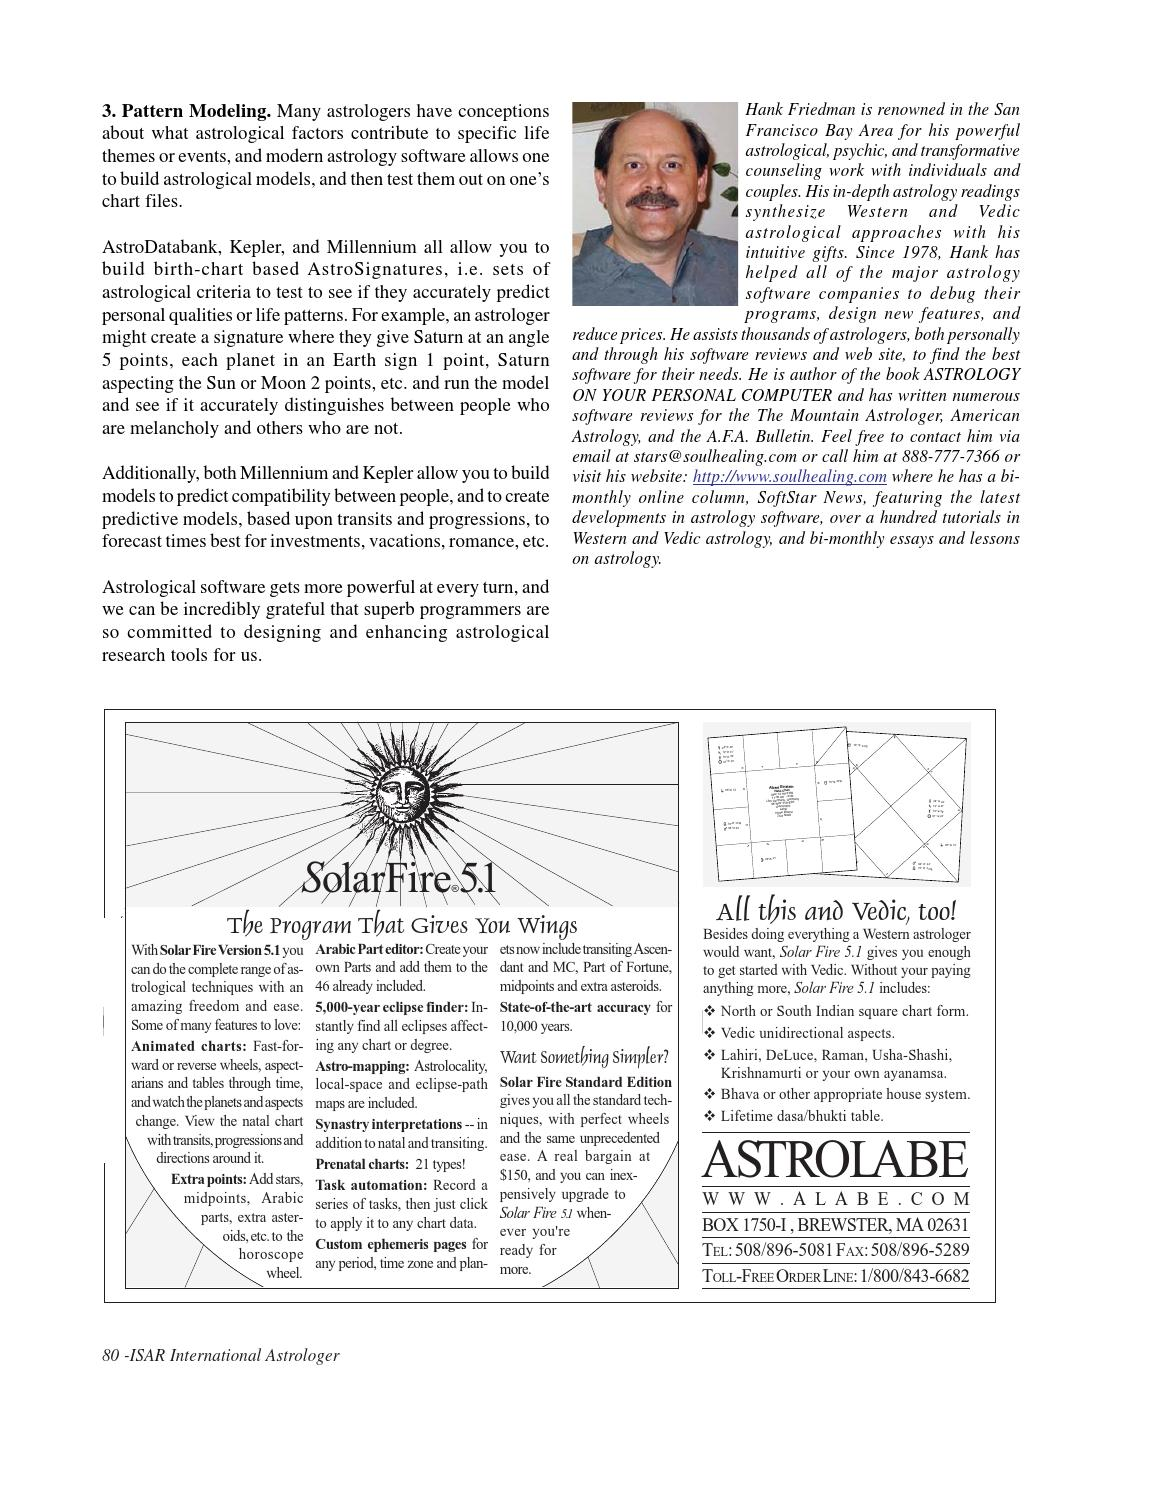 05 winter spring by ISAR Astrology - issuu